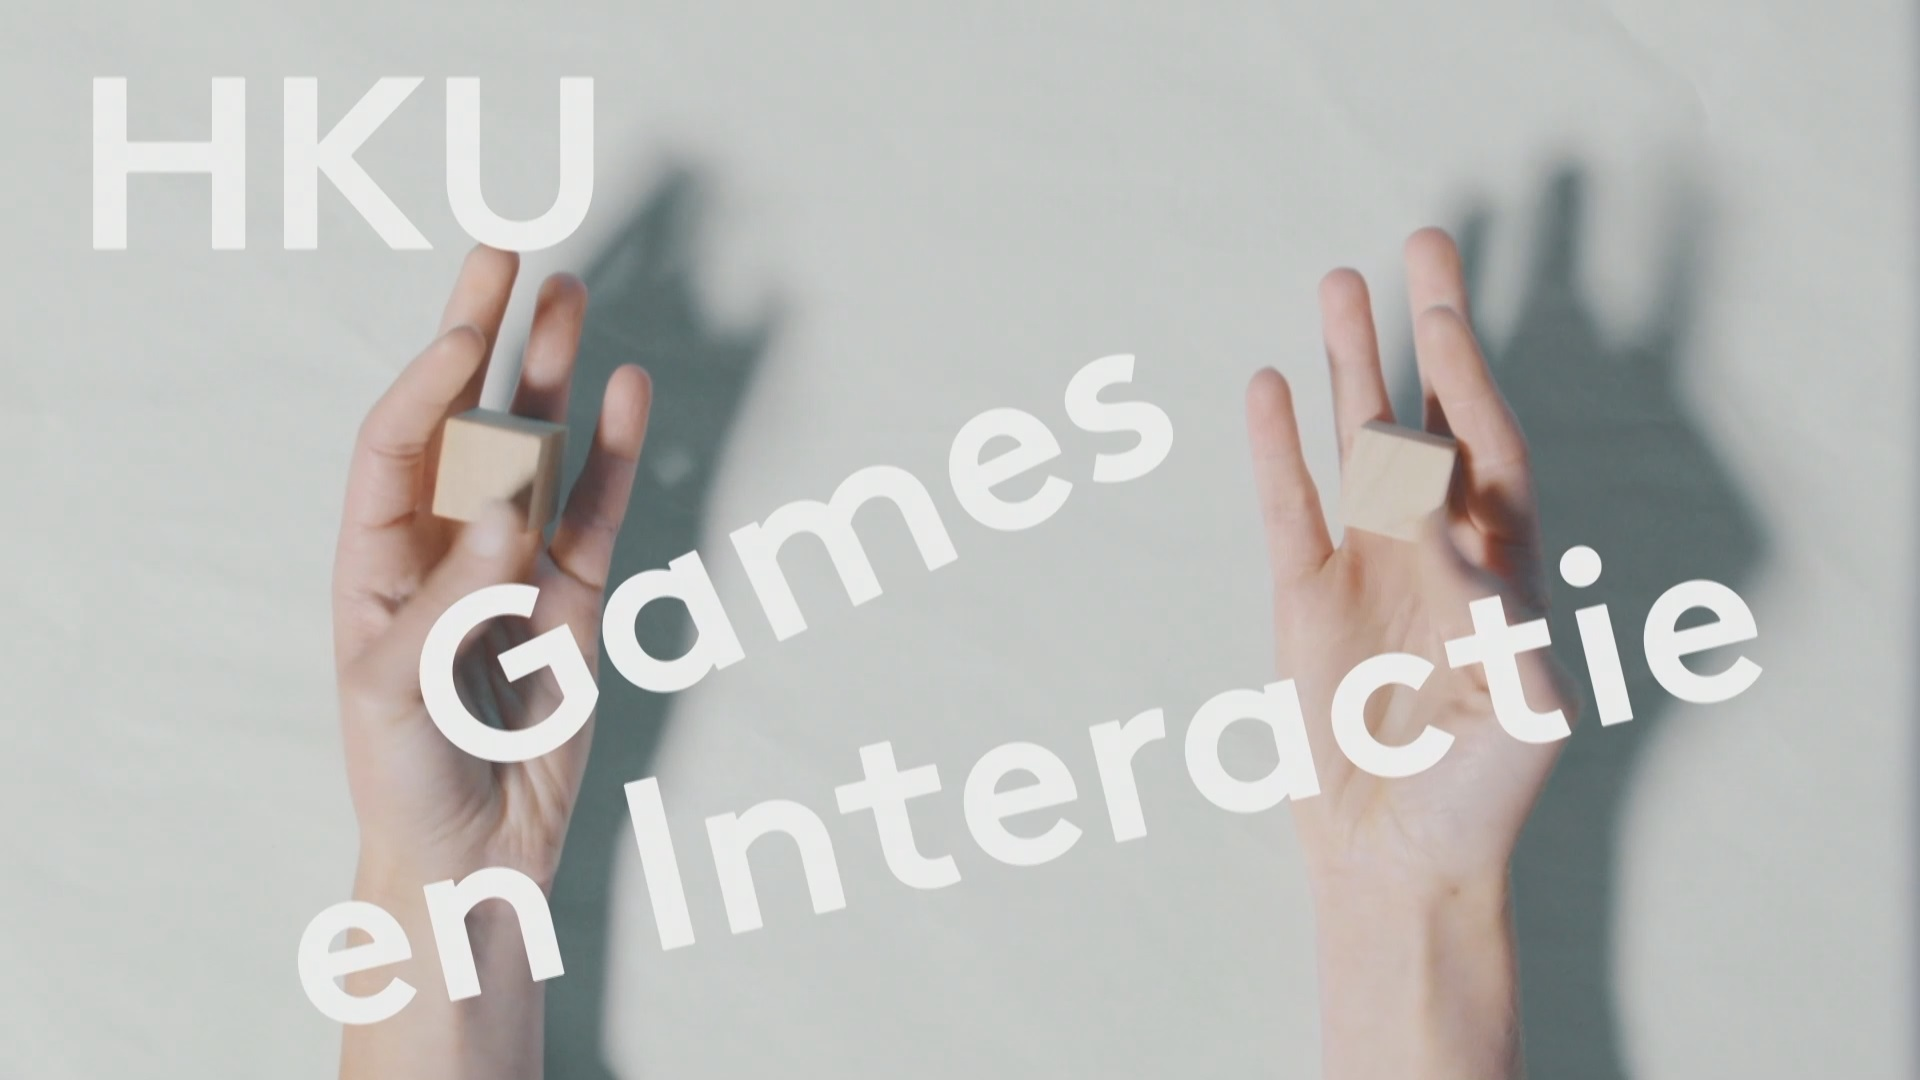 studio airport hku games en interactie